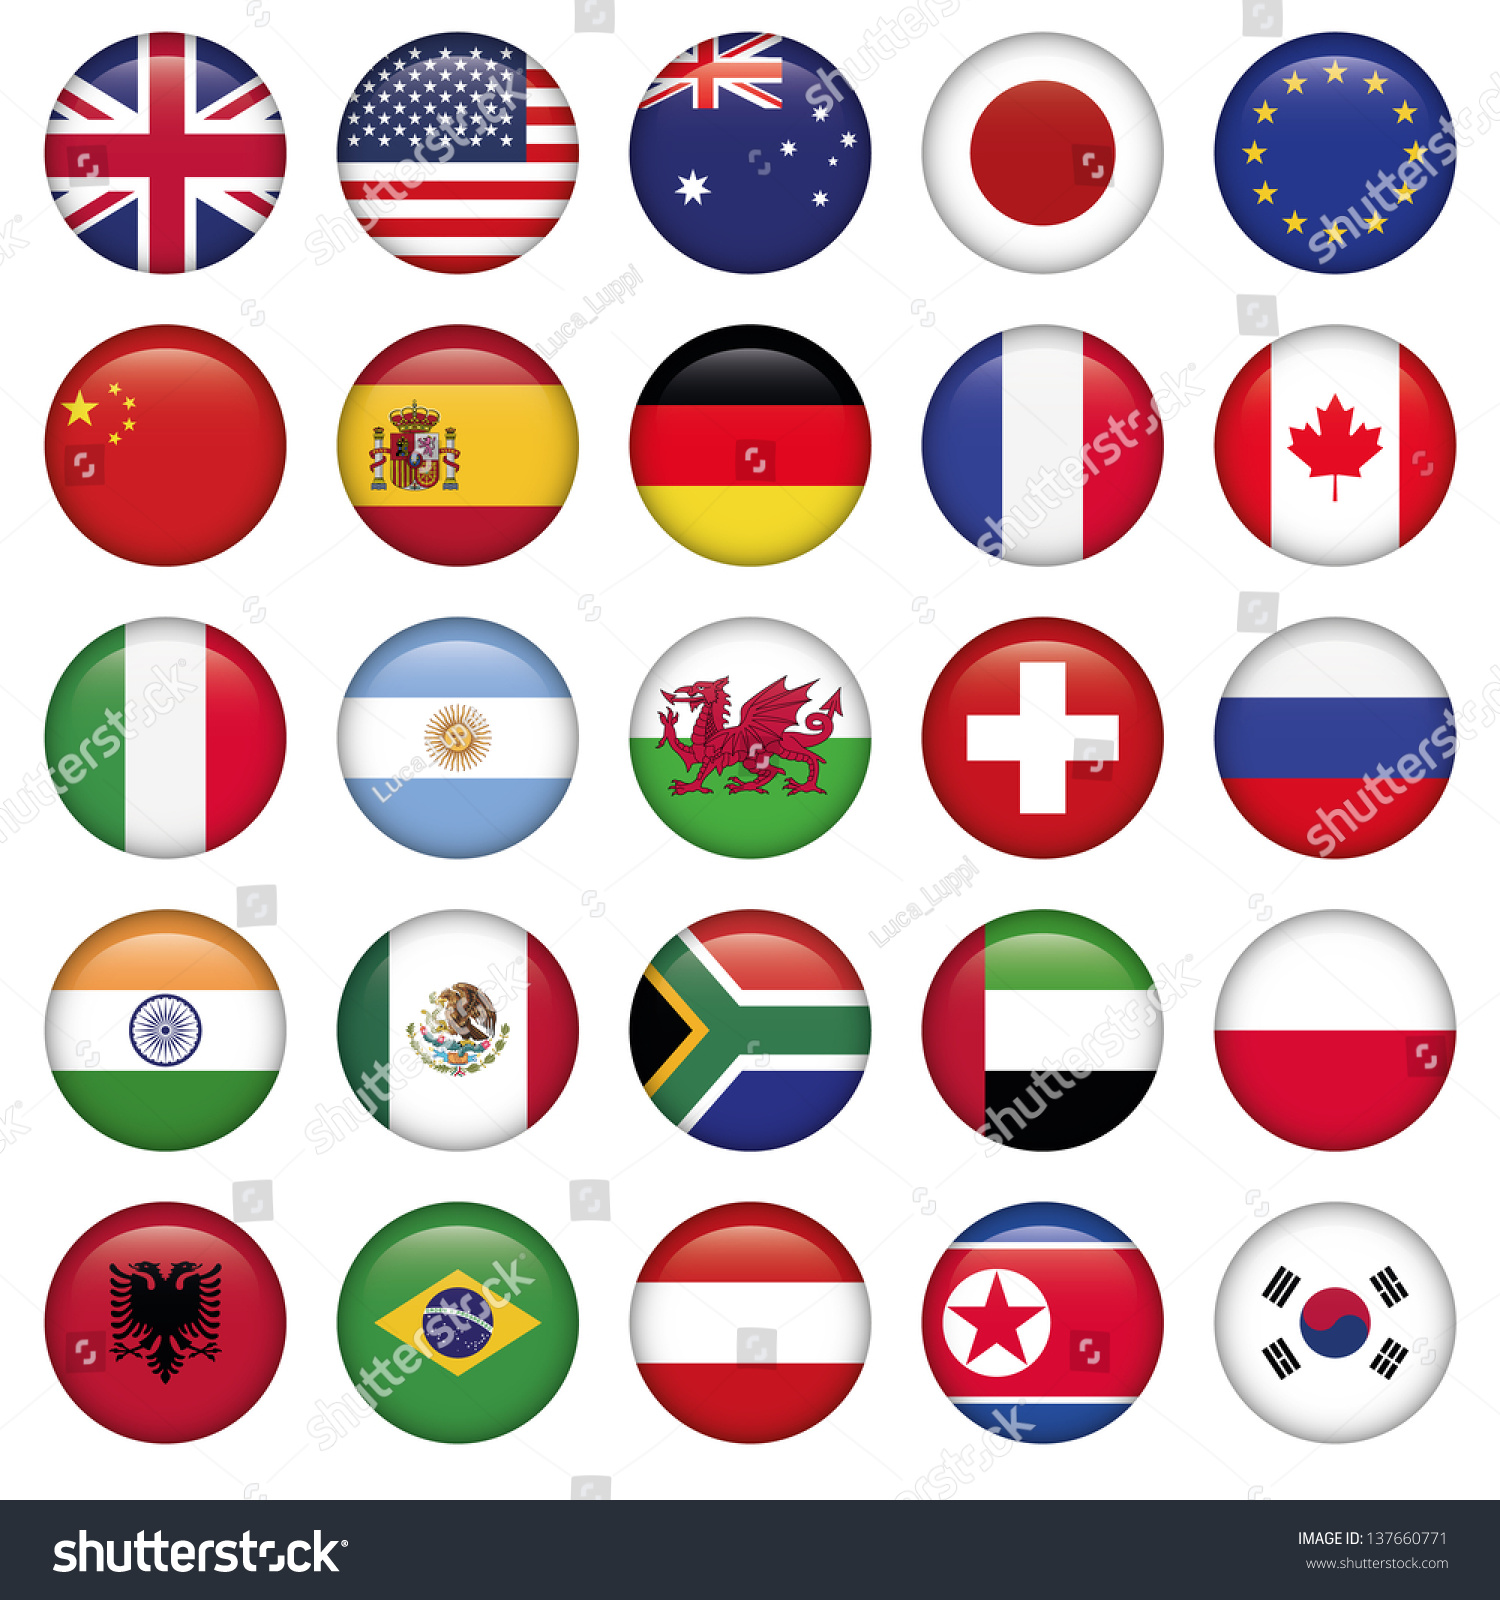 Set of Round Flags world top states #137660771